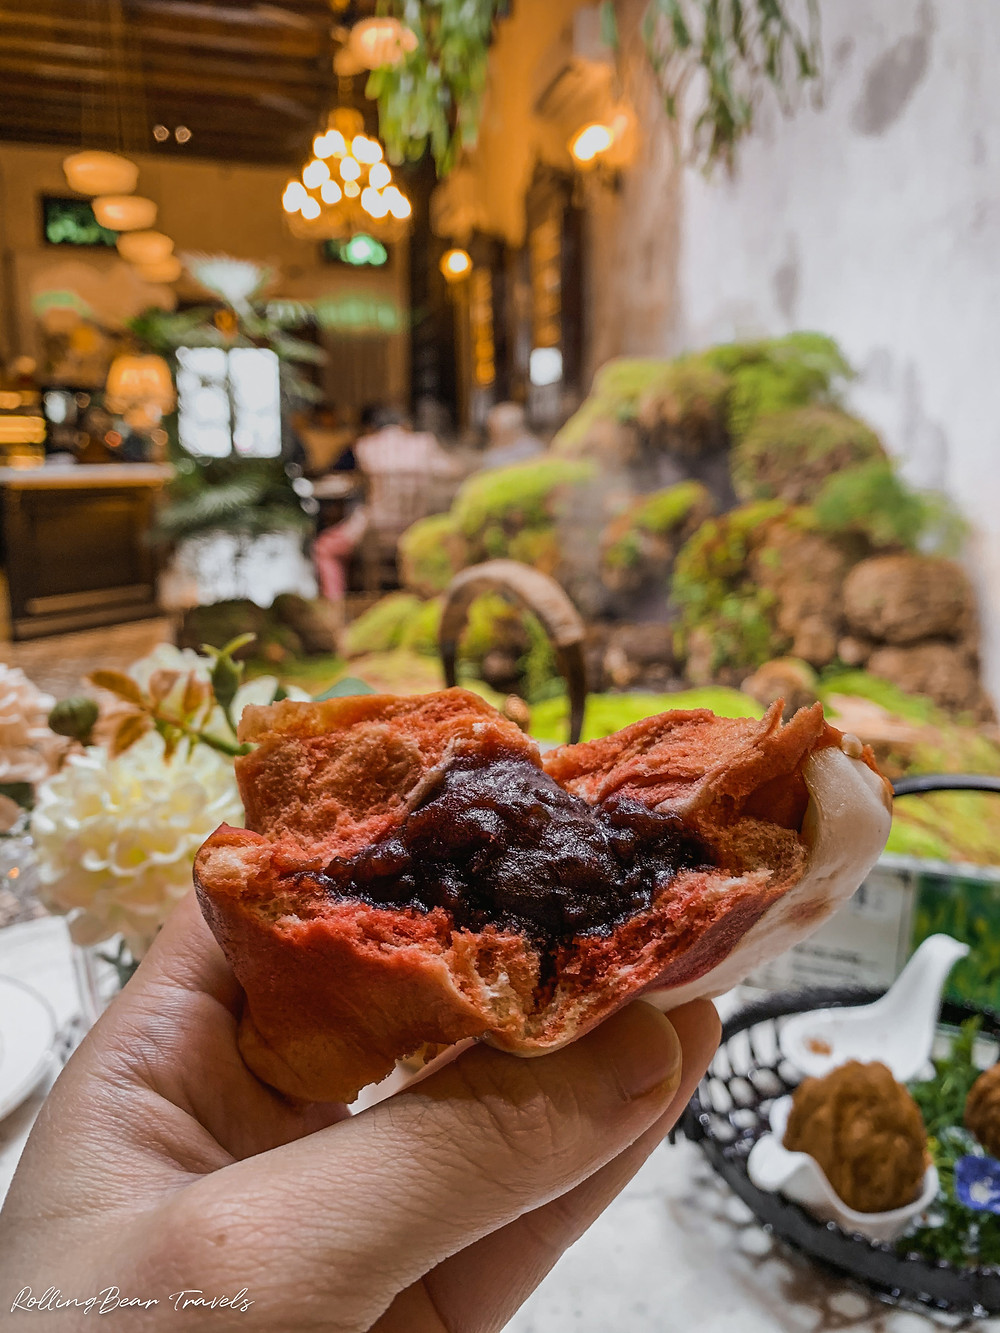 Bao Teck Teahouse food review: Beetroot red bean bun food photography by RollingBear Travels.